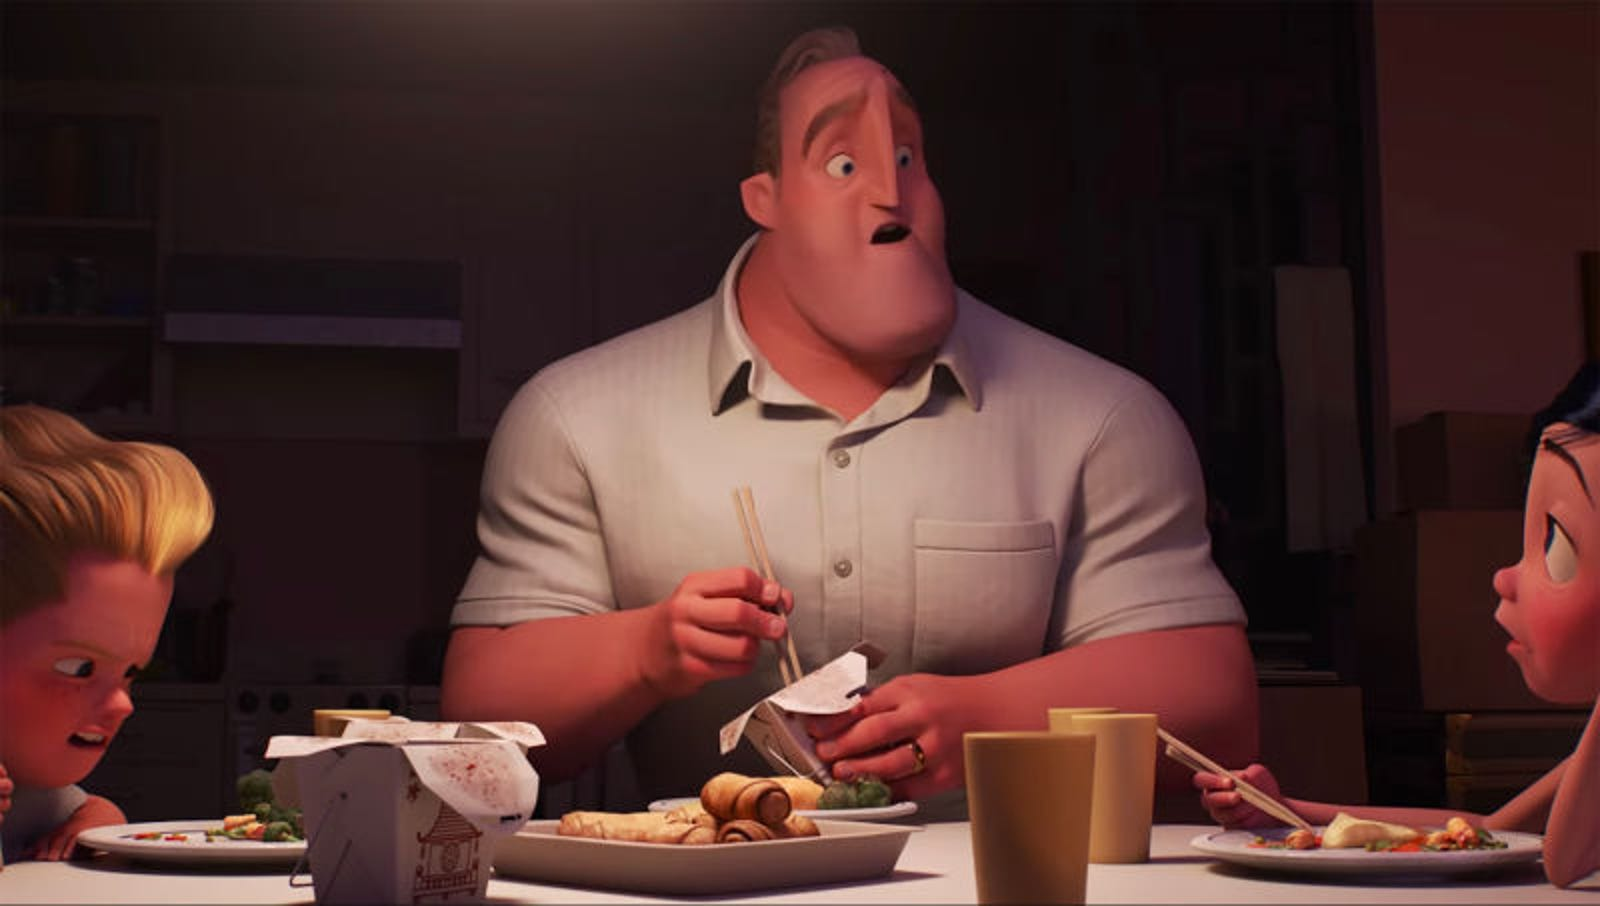 'Incredibles 2' Forced To Take Out Grisly Cannibalism Scene In Order To Secure PG Rating